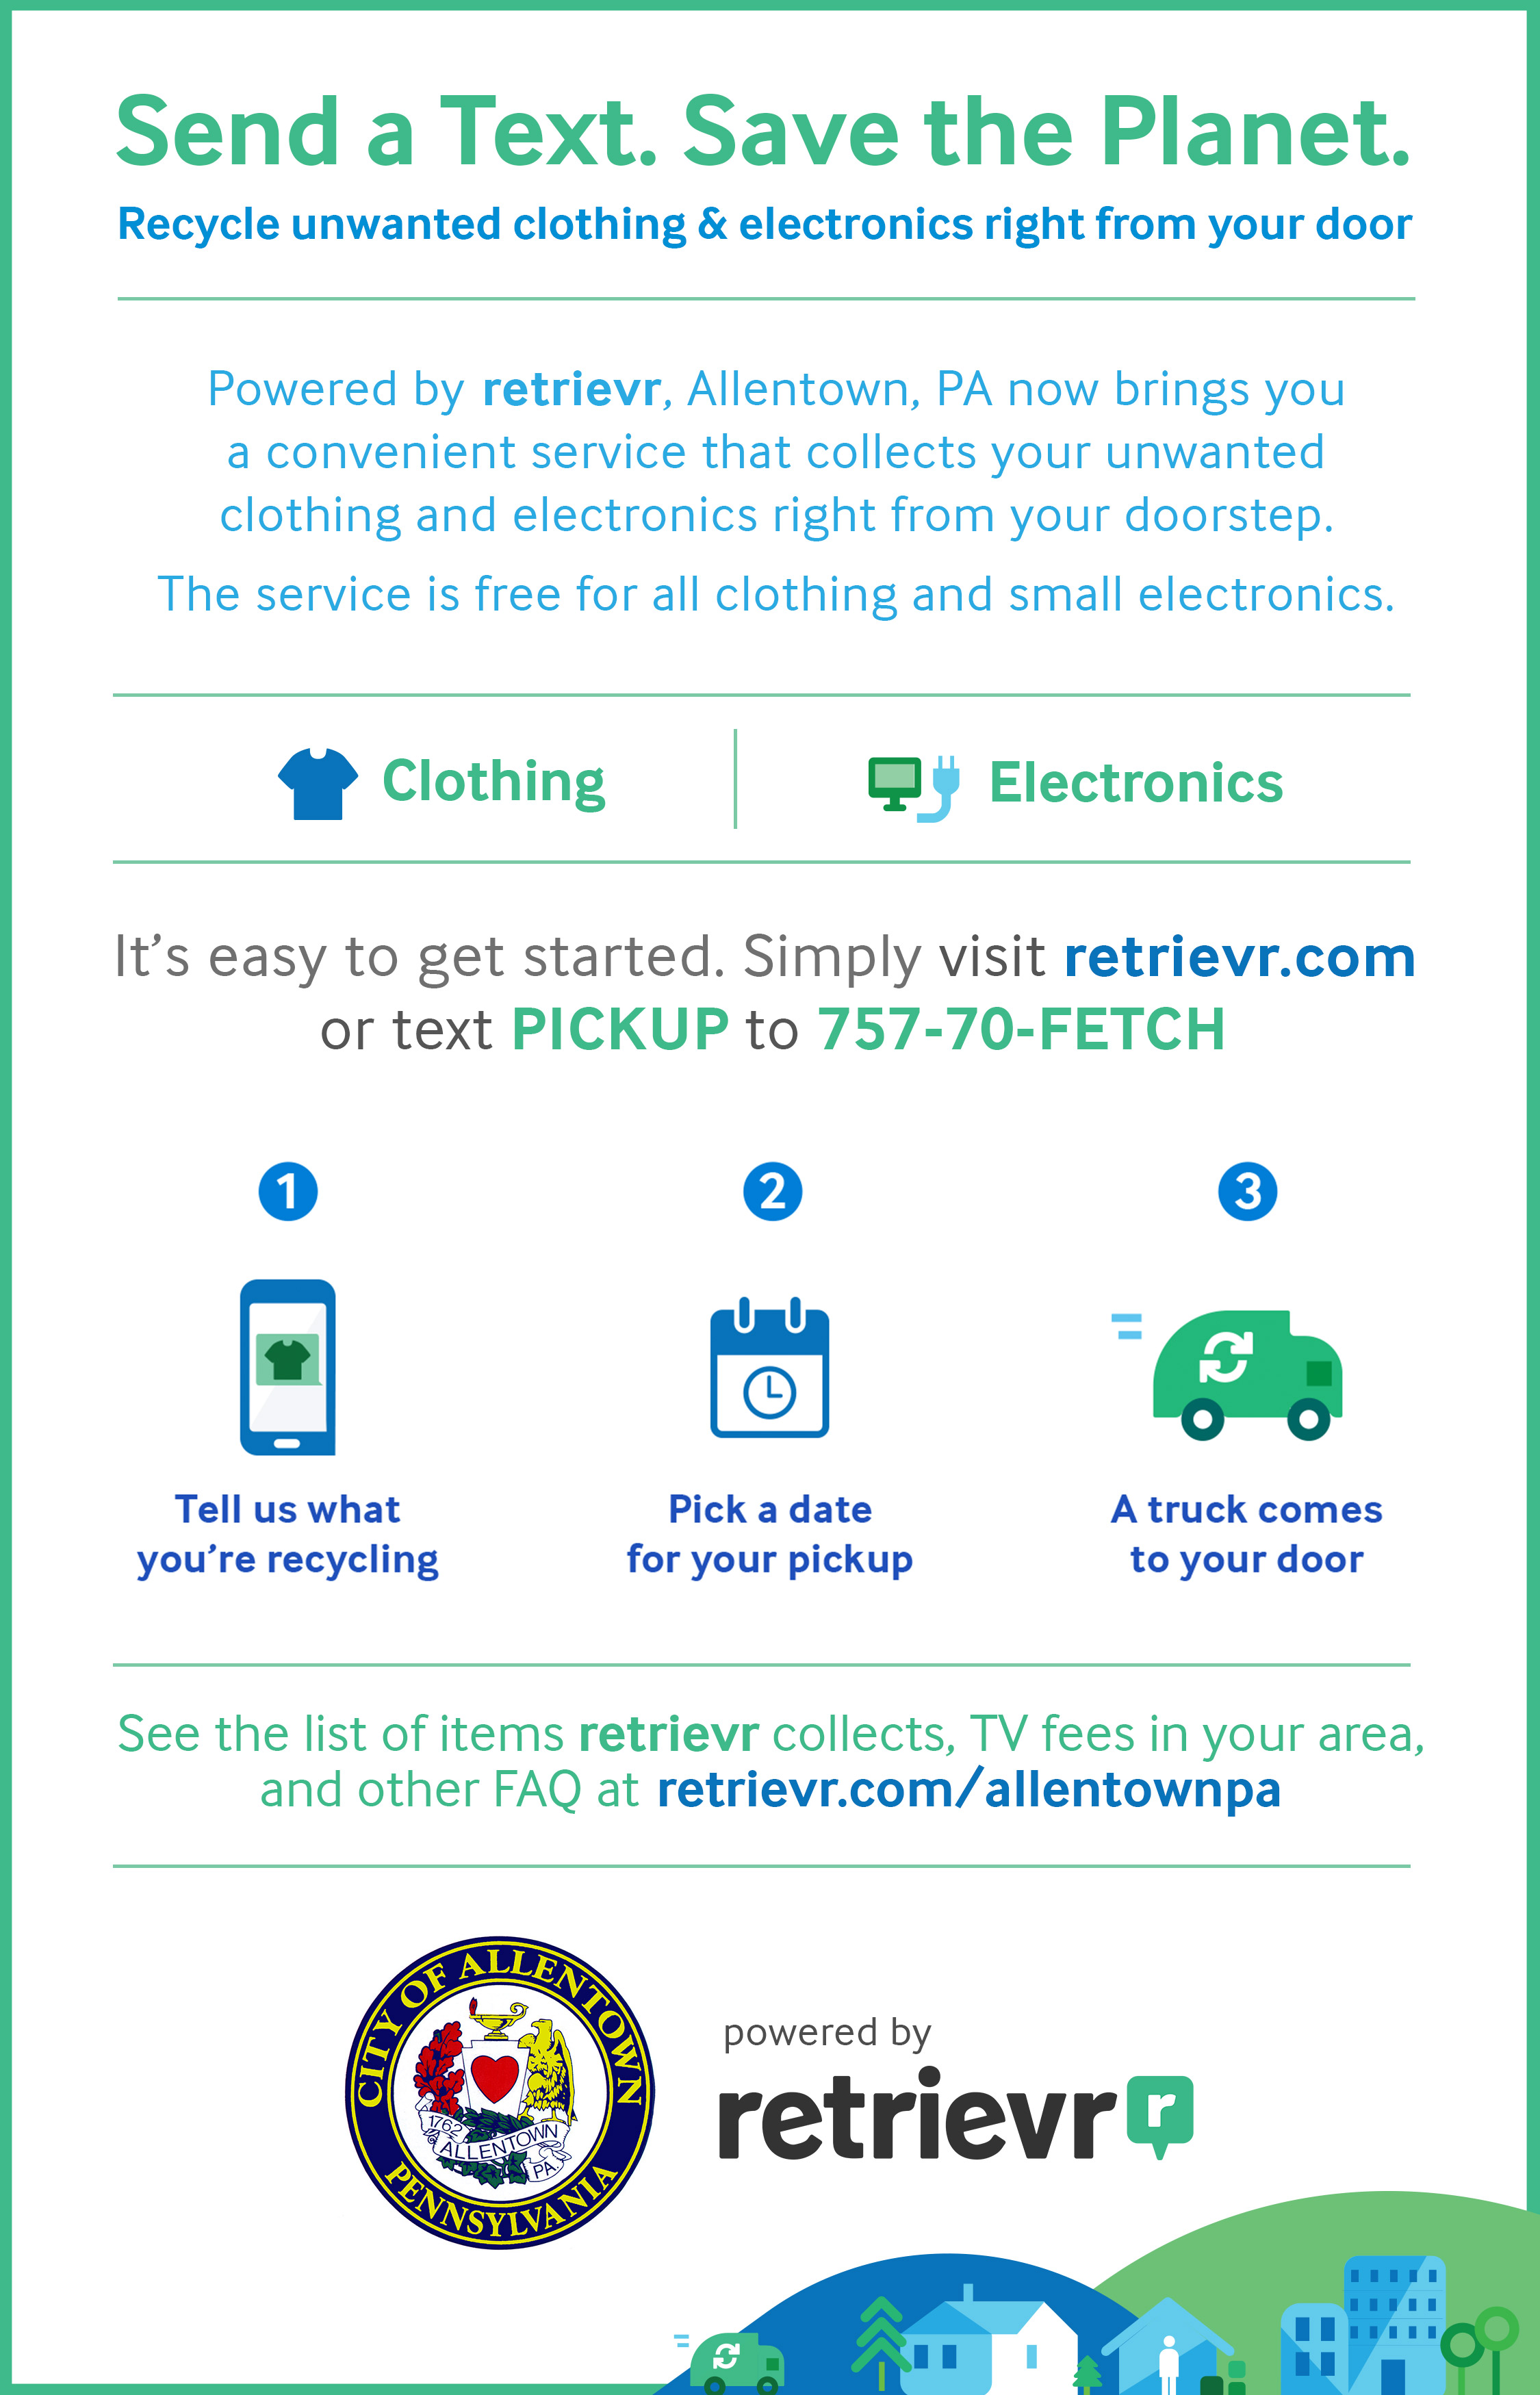 Send a Text. Save the Planet. Recycle unwanted clothing and electronics right from your door. It's easy to get started. Simply visit retrievr.com or text PICKUP to 757-70-FETCH. See the list of items retrievr collects, TV fees in your area, and other FAQ at retrievr.com/allentownpa.